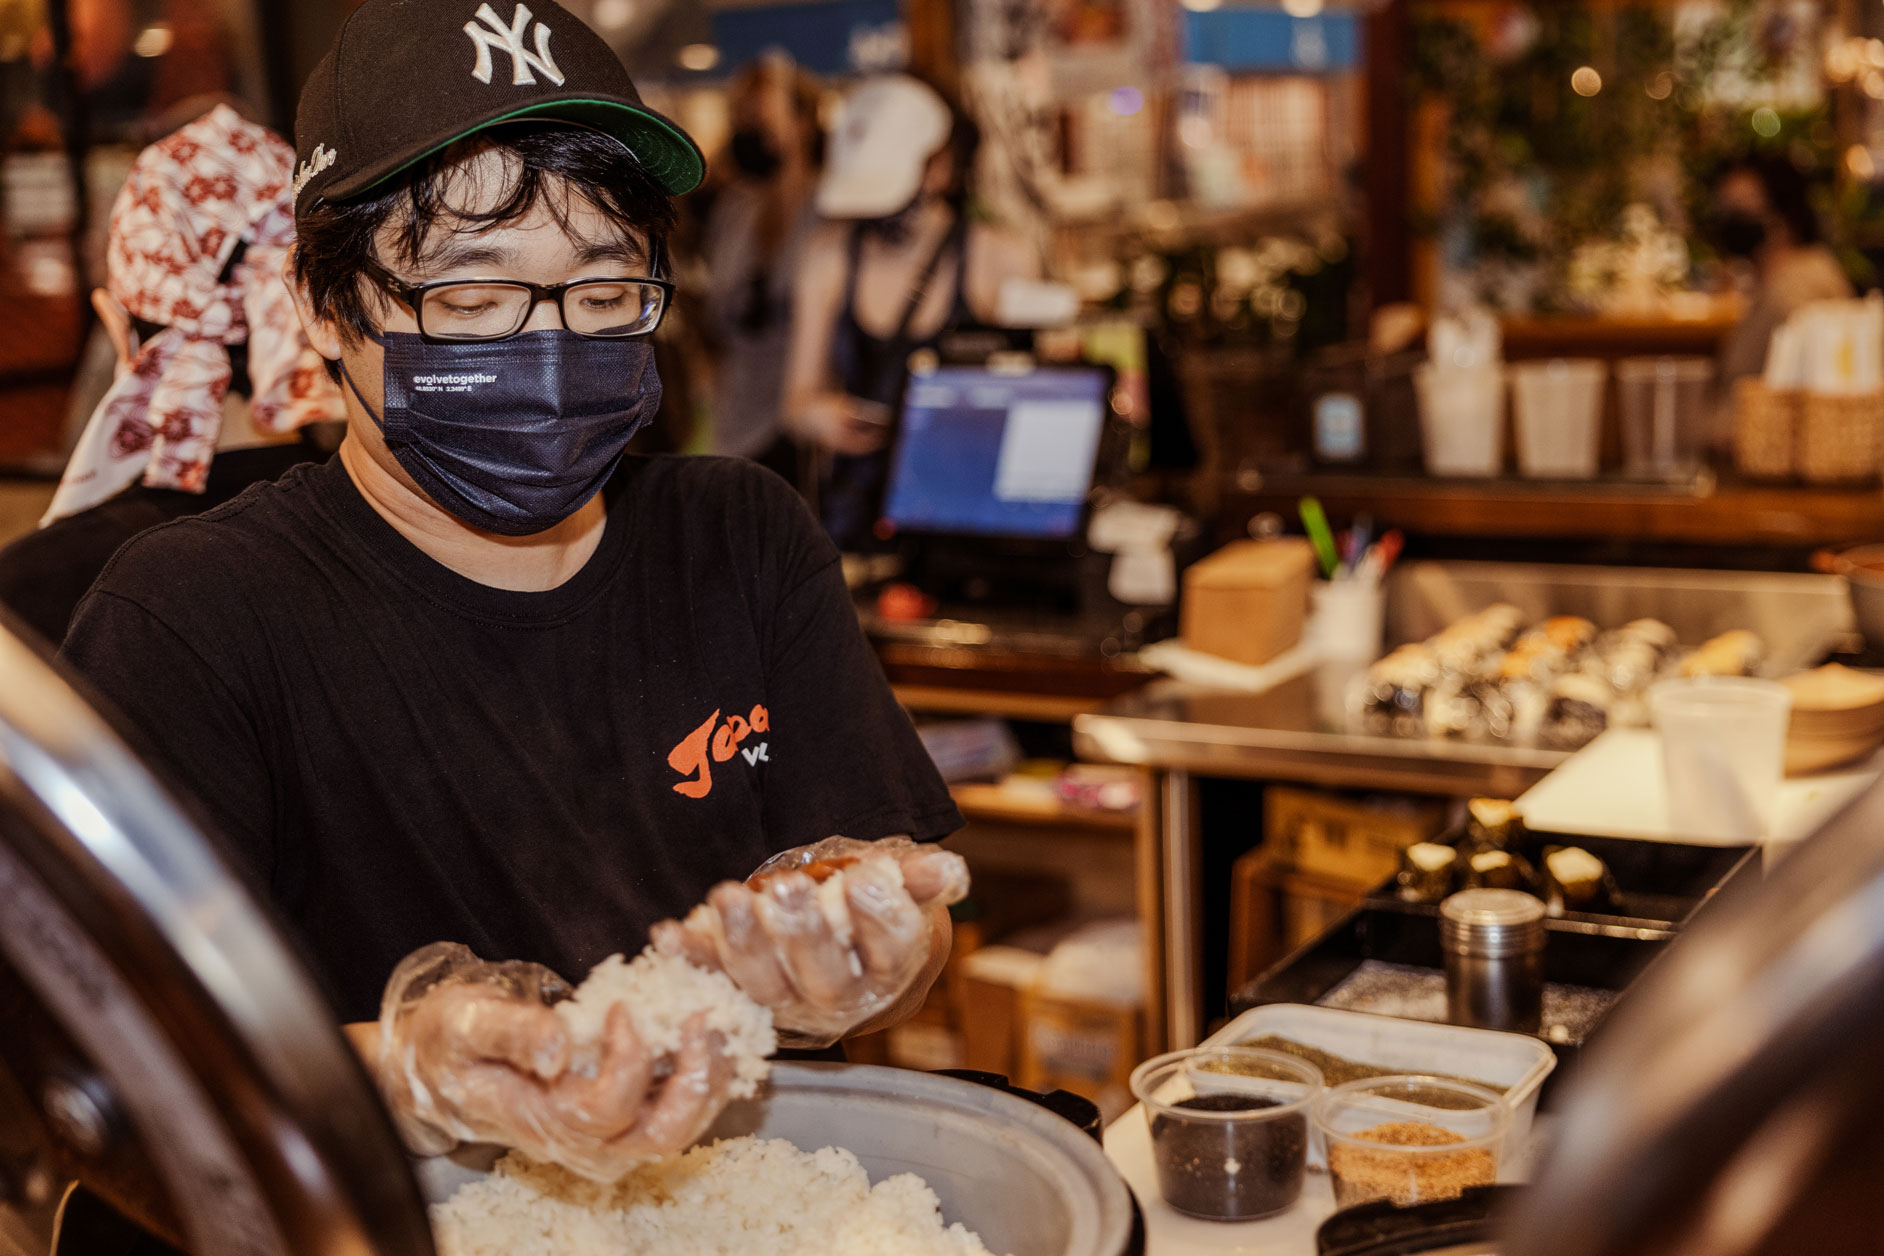 A person making rice balls.